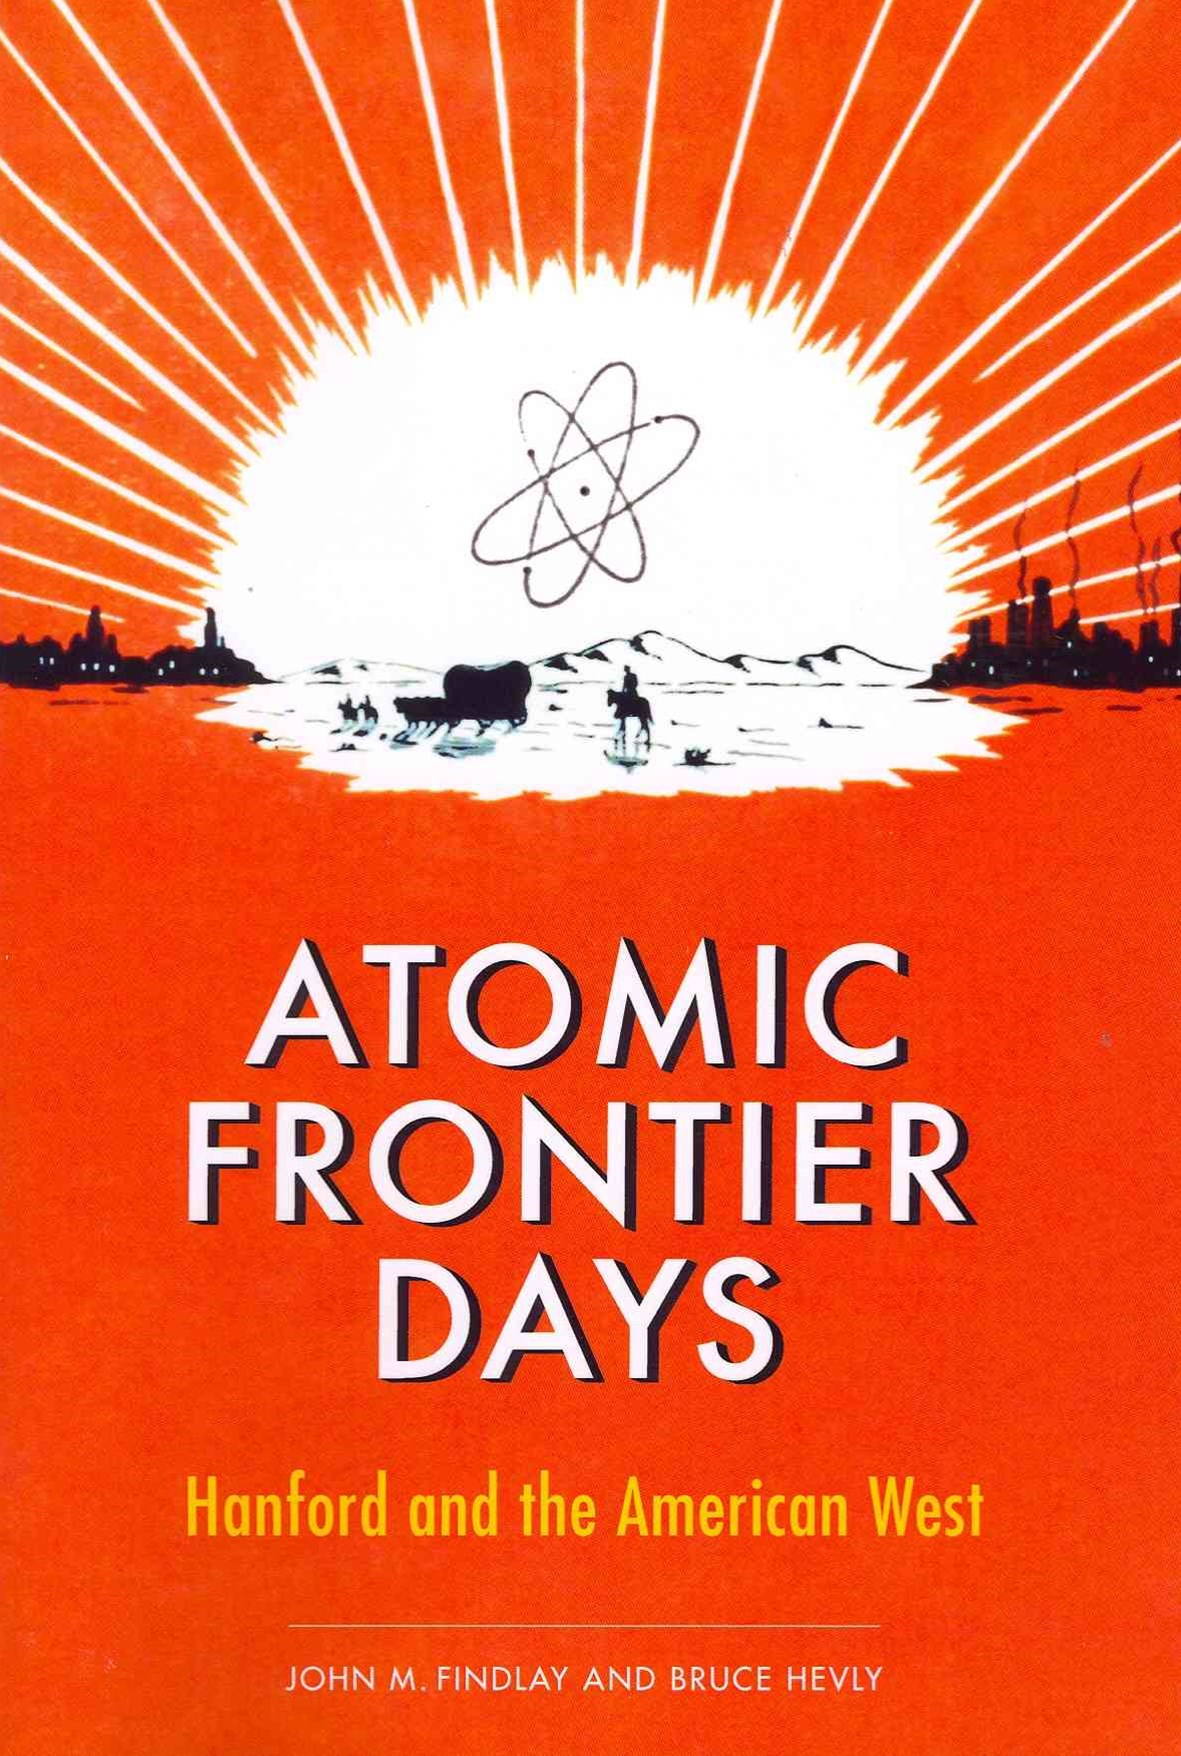 Atomic Frontier Days